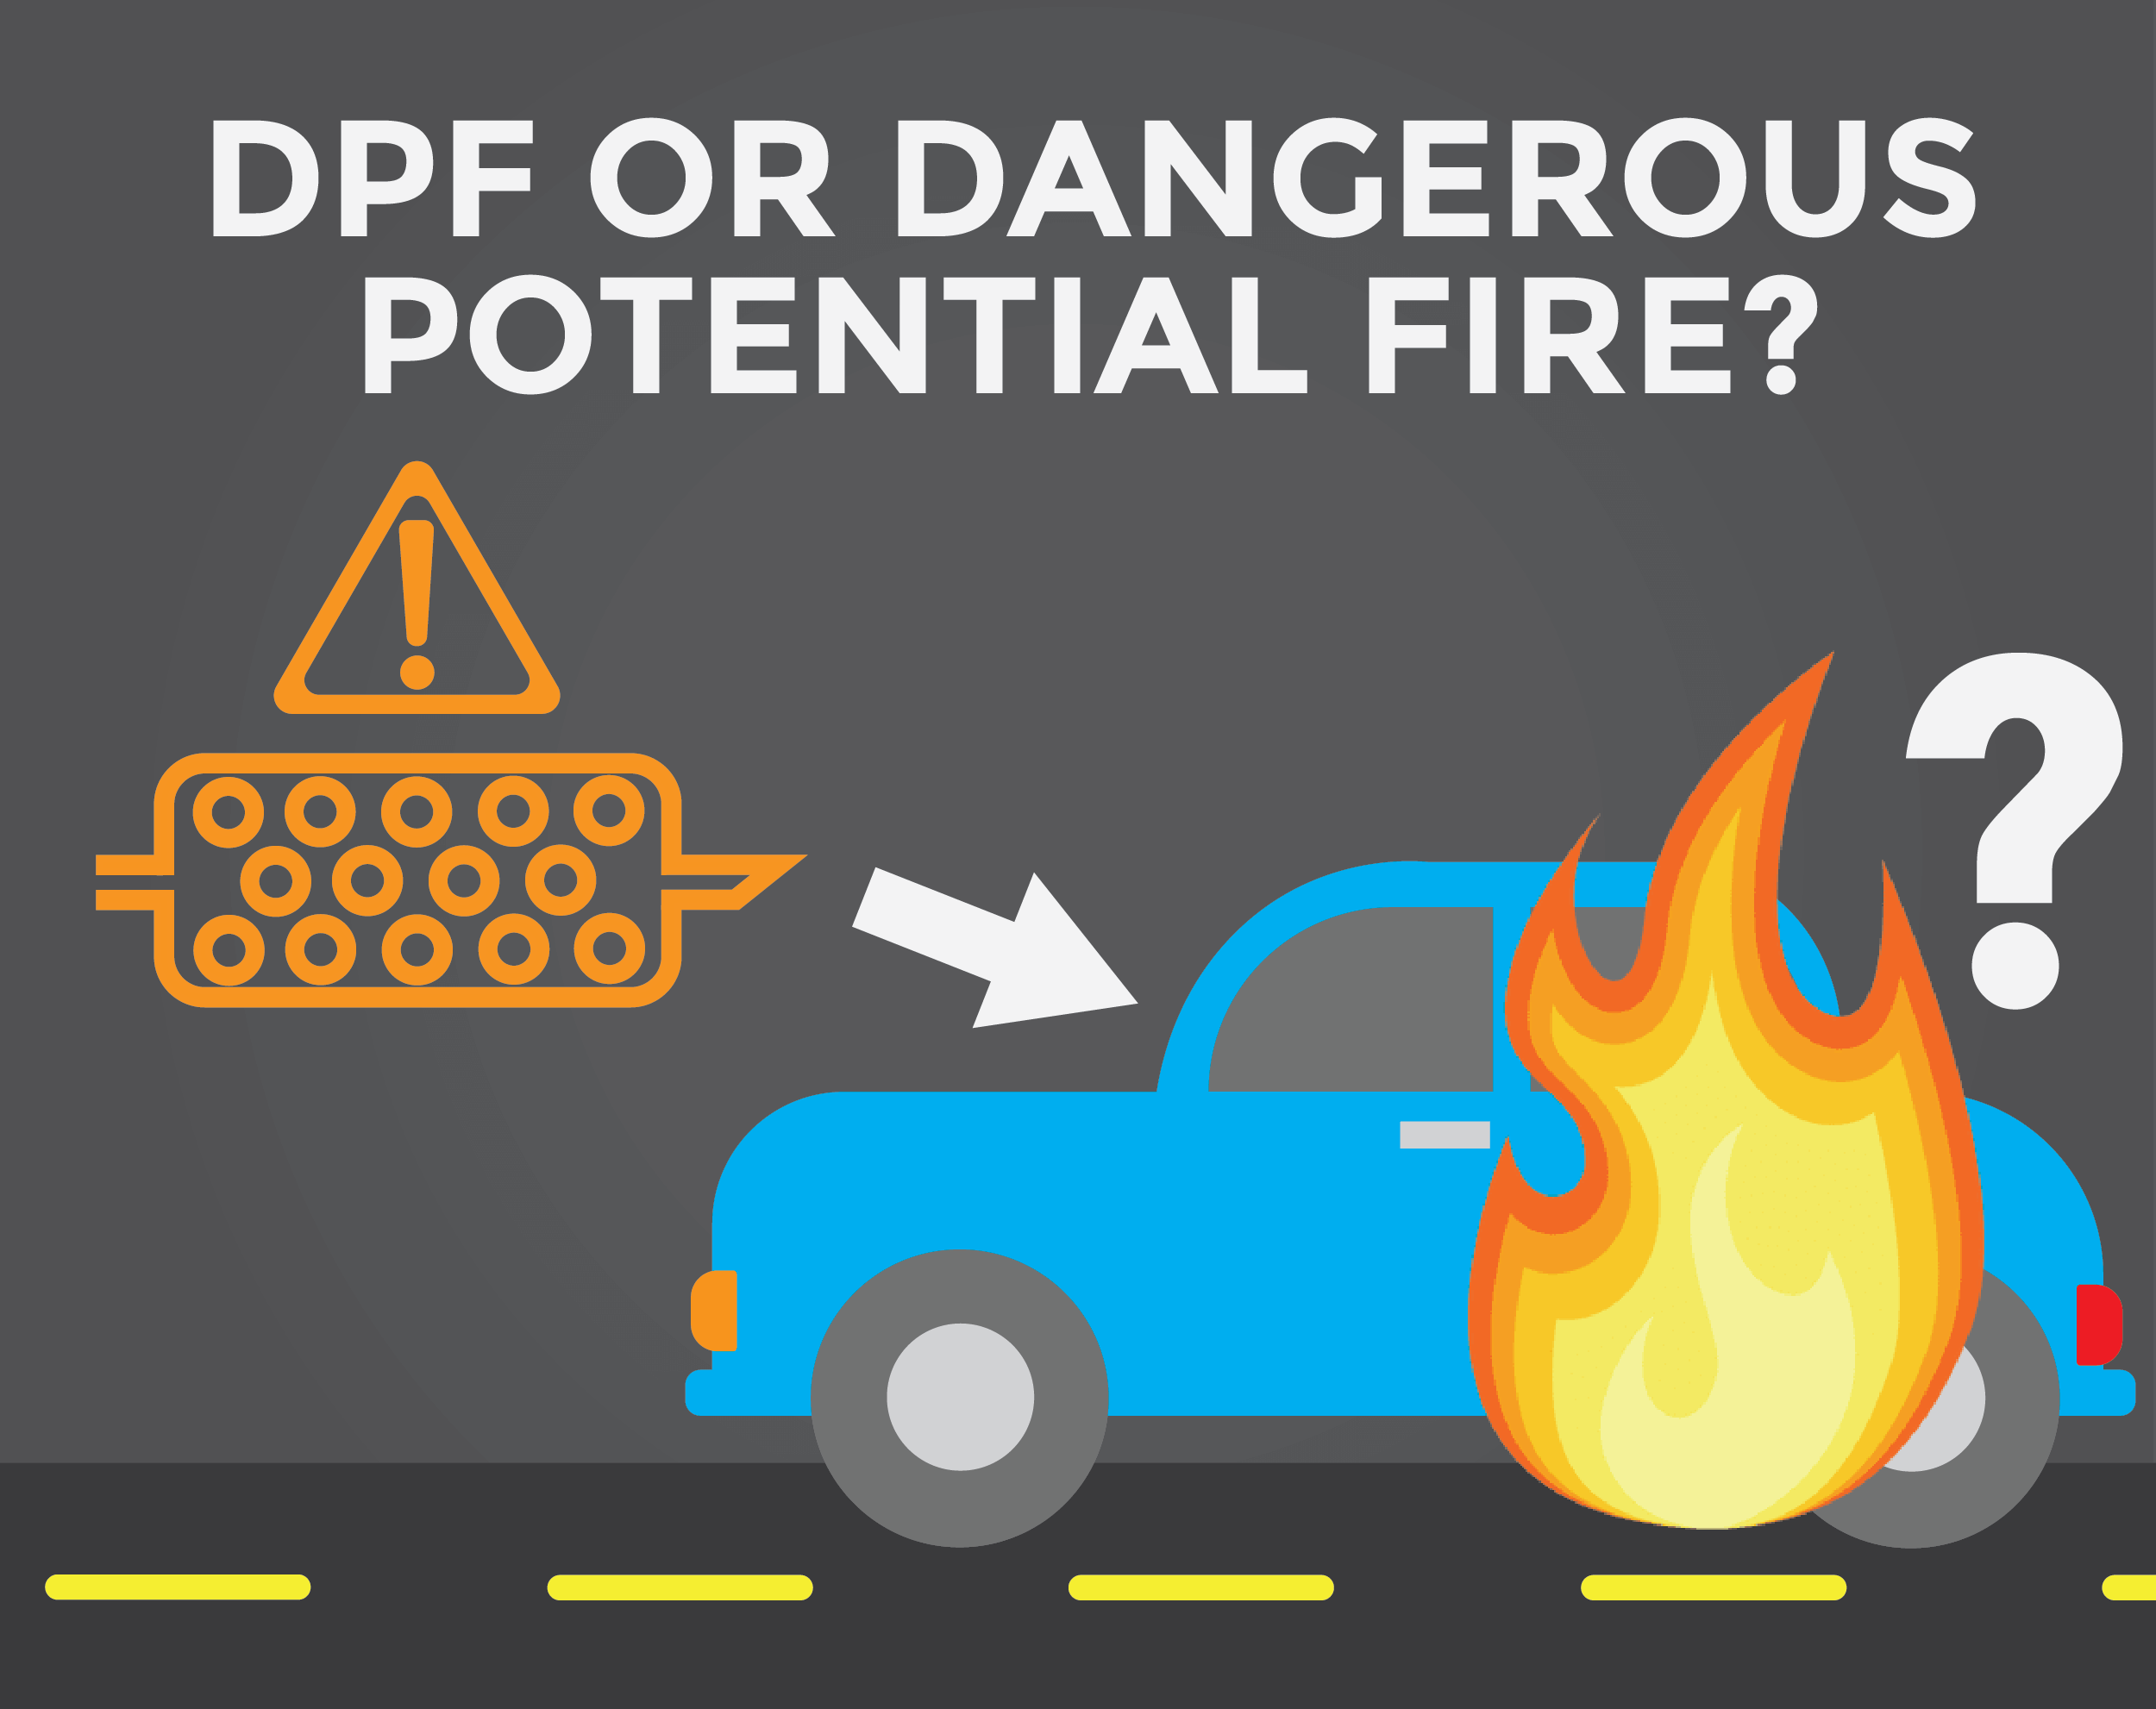 DPF or Dangerous Potential Fire feature image